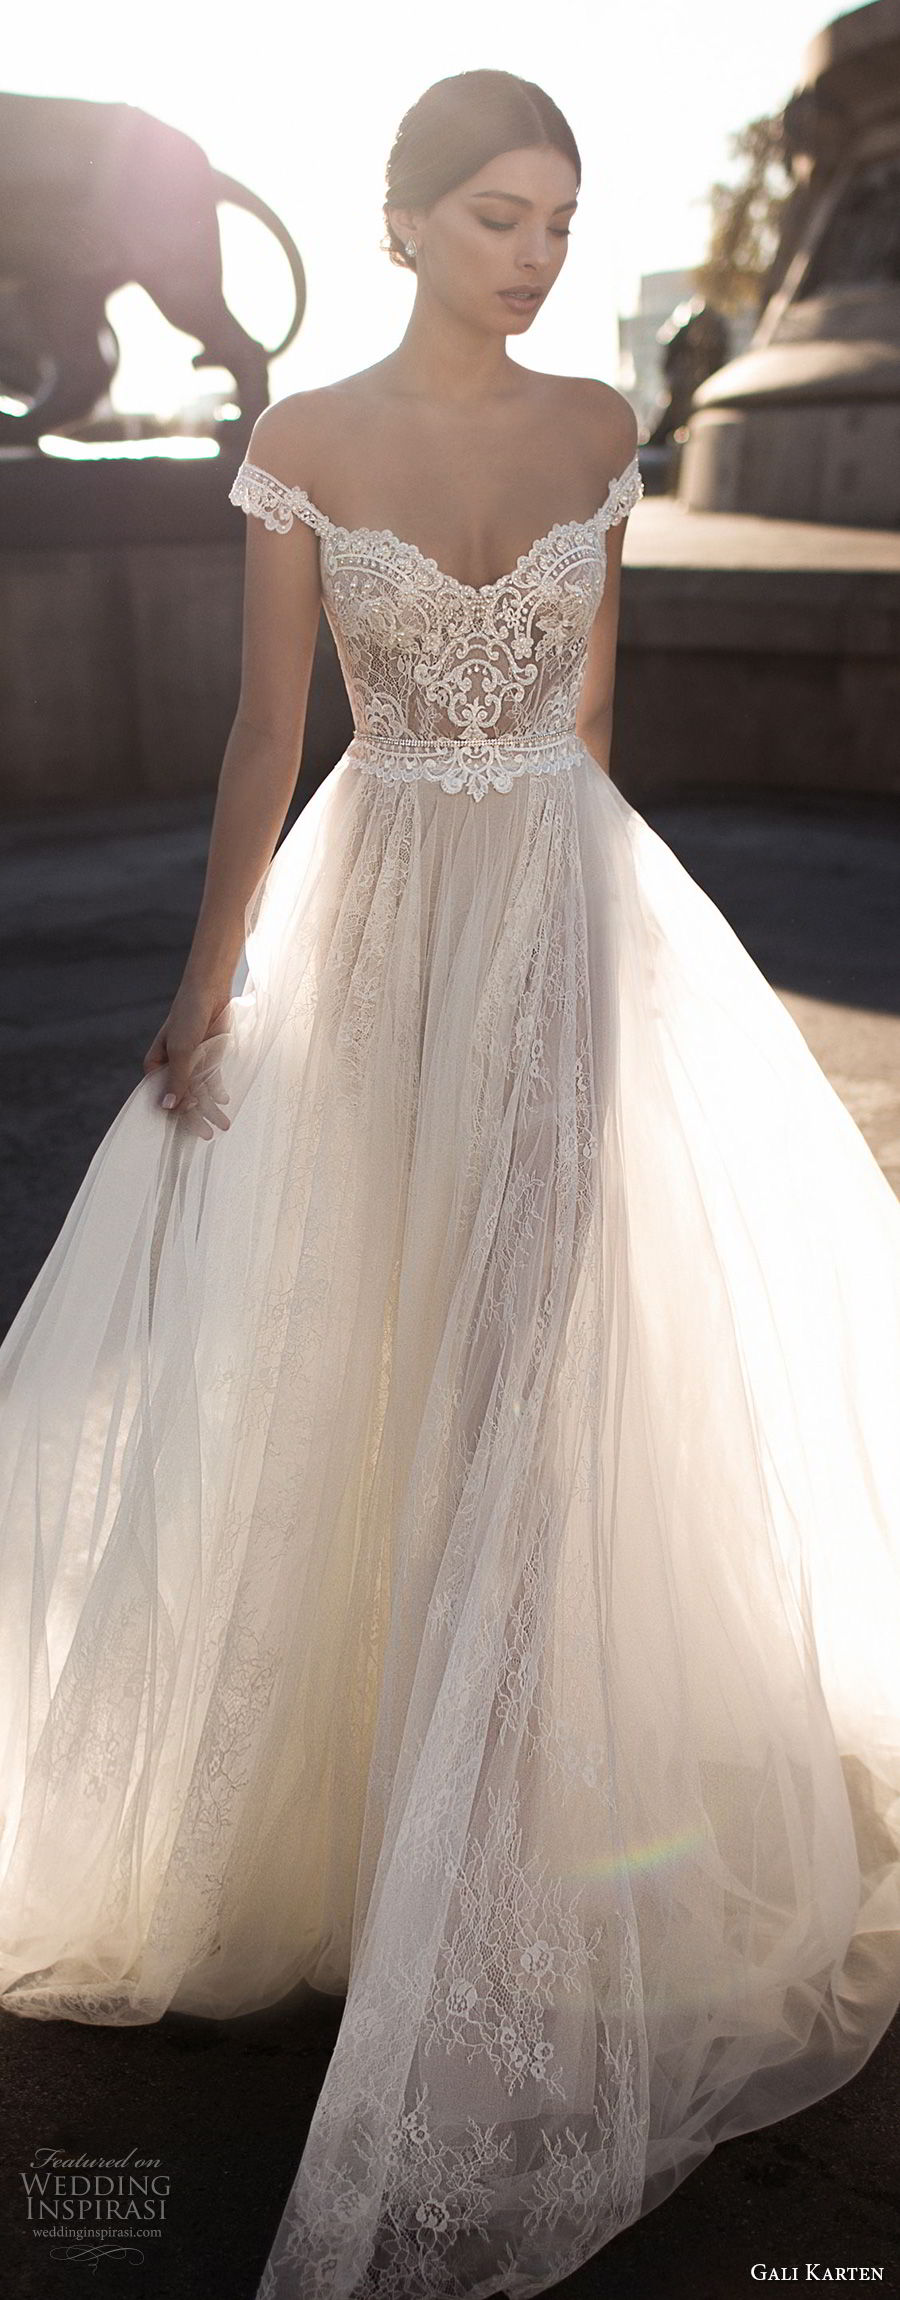 You Will Float Down The Aisle In This A Line Gown S Beautiful Layers And Of Weightless Chiffon Strapless Sweetheart Bodice Is Crafted